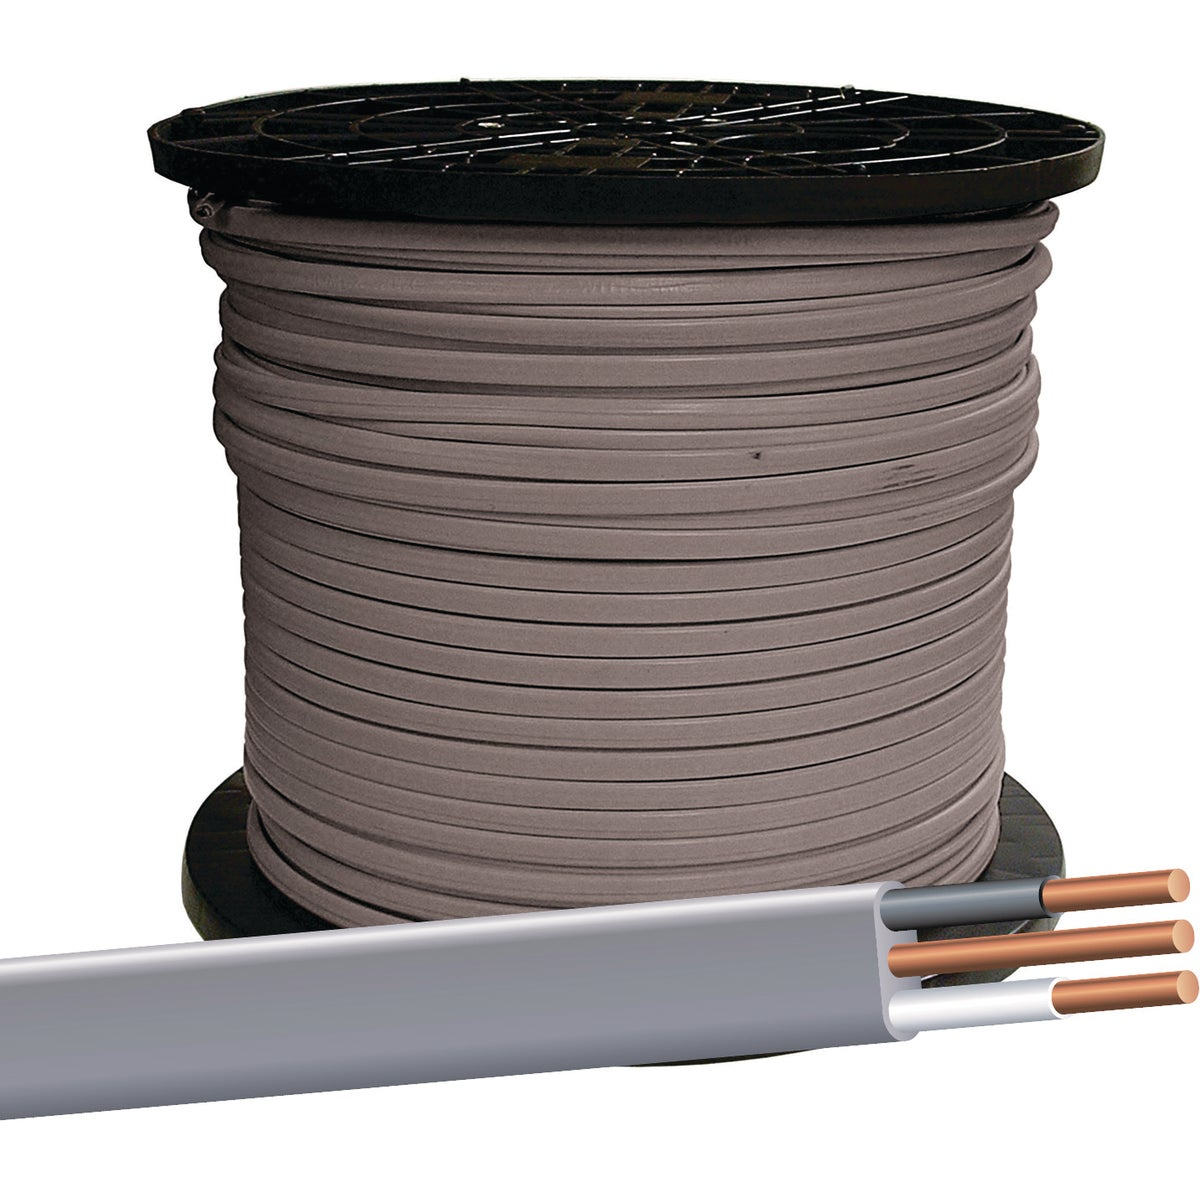 400' 12-2 UFW/G SPL WIRE - 13055972 by Southwire Company